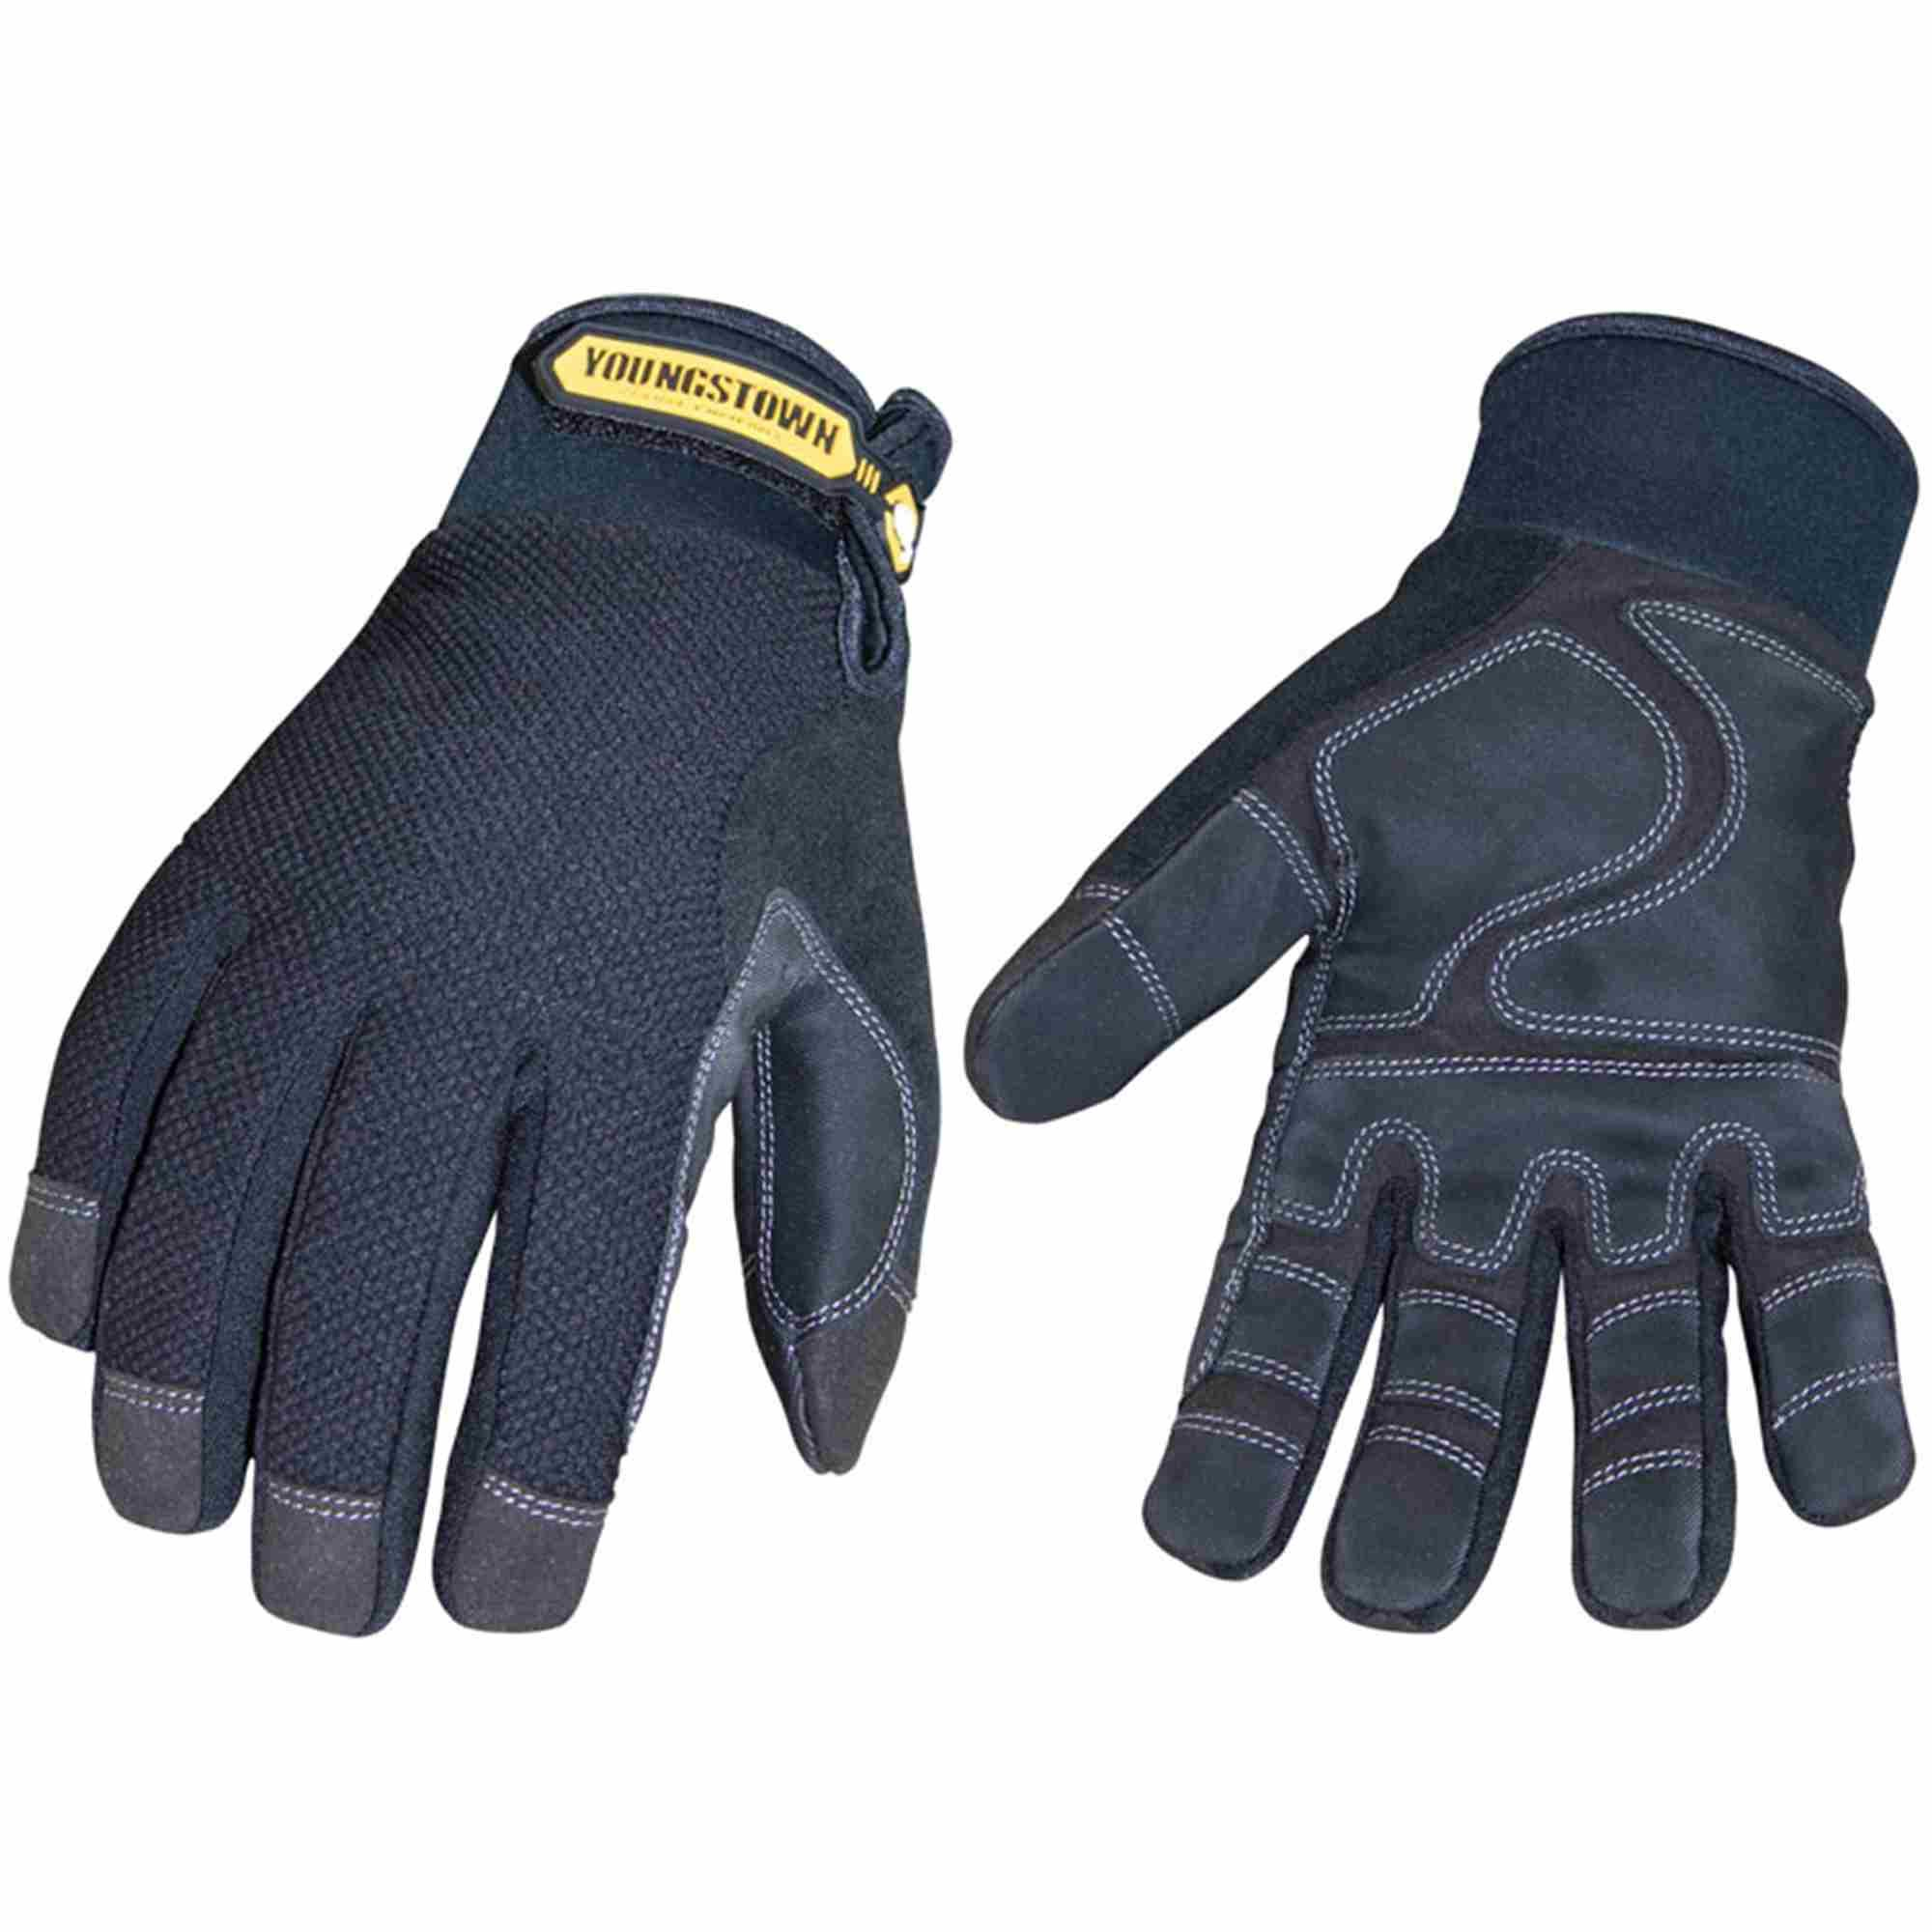 03-3450-80-M Youngstown Glove Professional Gloves 6 PK